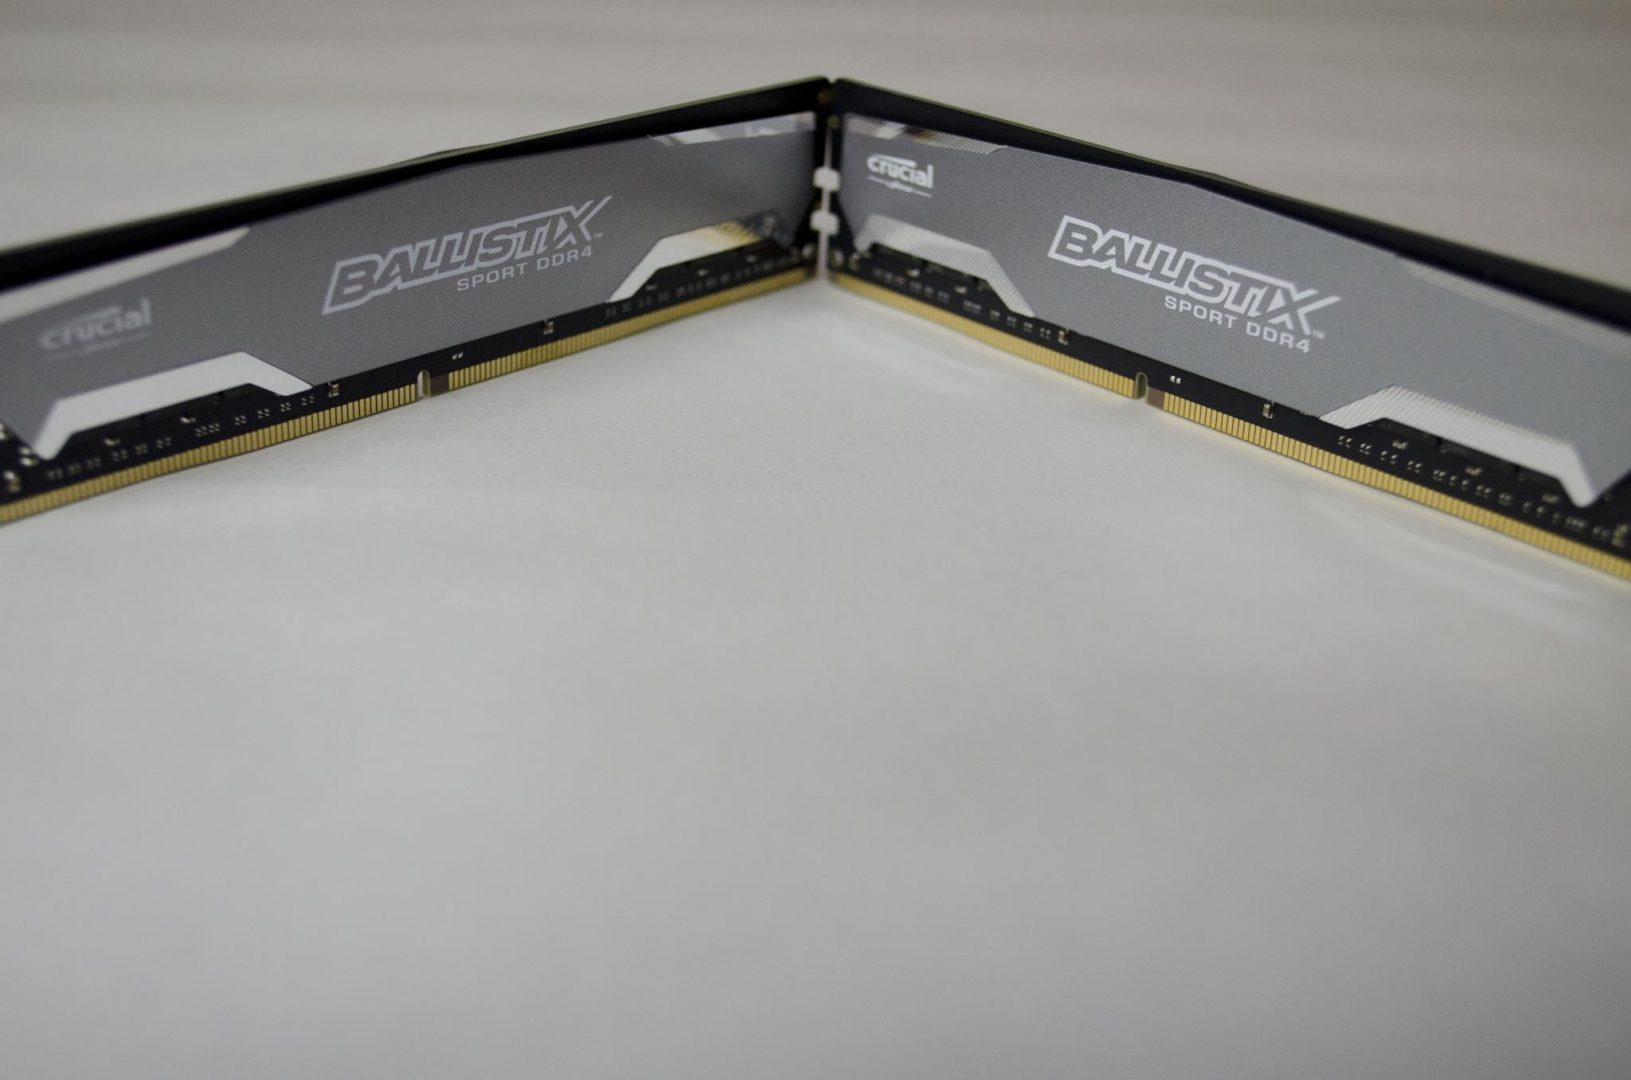 crucial ballistix sport 16gb ddr4 2400mhz reviews_5